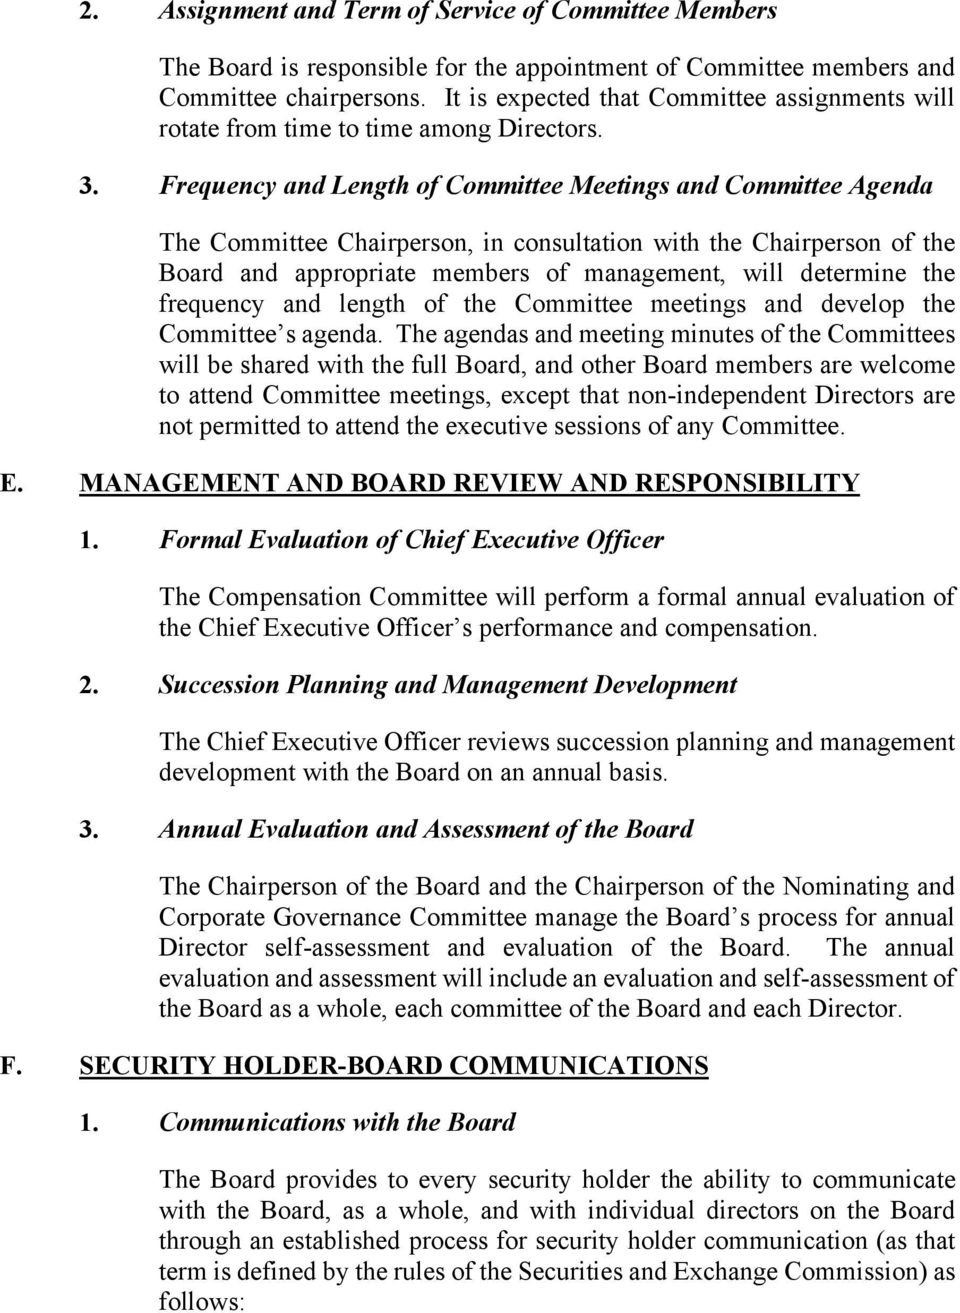 Frequency and Length of Committee Meetings and Committee Agenda The Committee Chairperson, in consultation with the Chairperson of the Board and appropriate members of management, will determine the